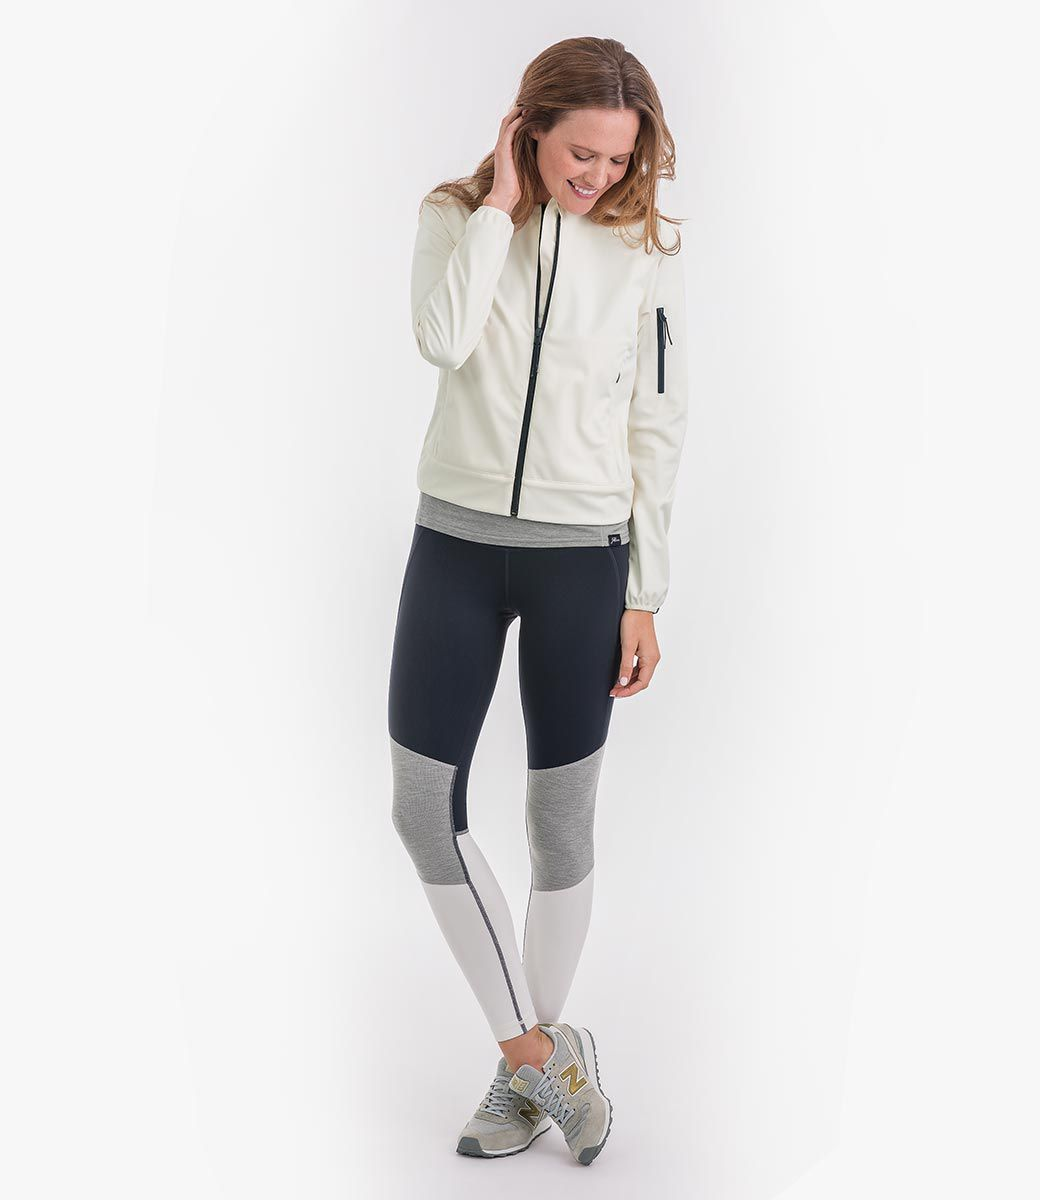 New Balance US Womens October JCrew Outfit 12,